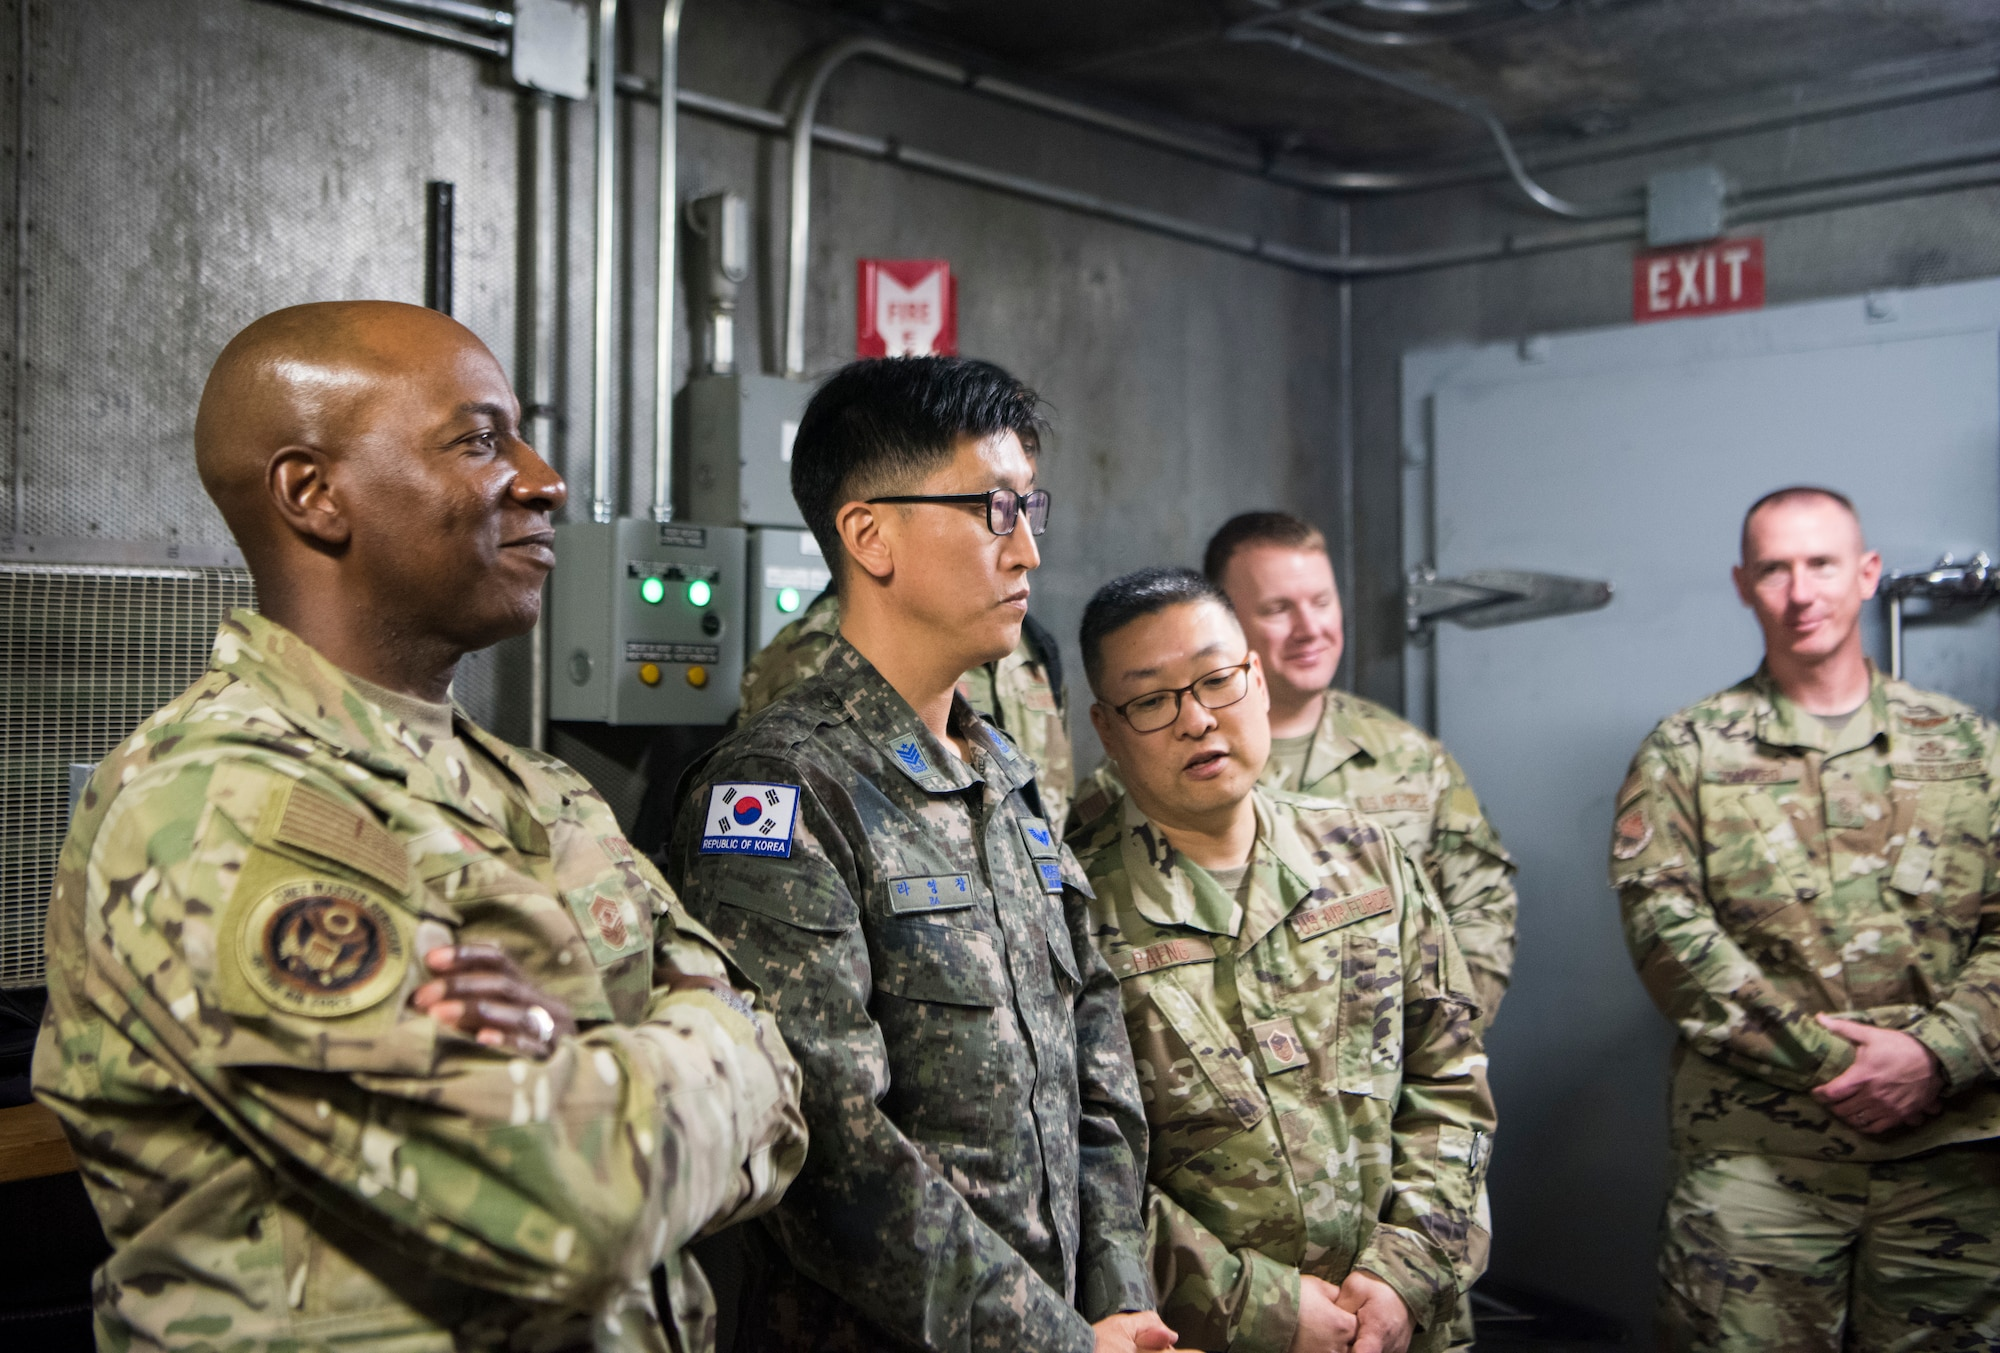 Chief Master Sergeant of the Air Force Kaleth O. Wright, chief master sergeant of the Republic of Korea, Ra Young-Chang and Joint Base Elmendorf-Richardson senior enlisted leaders are briefed before an F-22 jet engine test cell function check at JBER, Alaska, June 10, 2019. Chief Wright visited JBER during Red Flag-Alaska 19-2 to meet with his senior enlisted leader counterparts from throughout the Pacific. Red Flag-Alaska is a Pacific Air Forces-directed exercise that allows U.S. forces to train with coalition partners in a simulated combat environment.